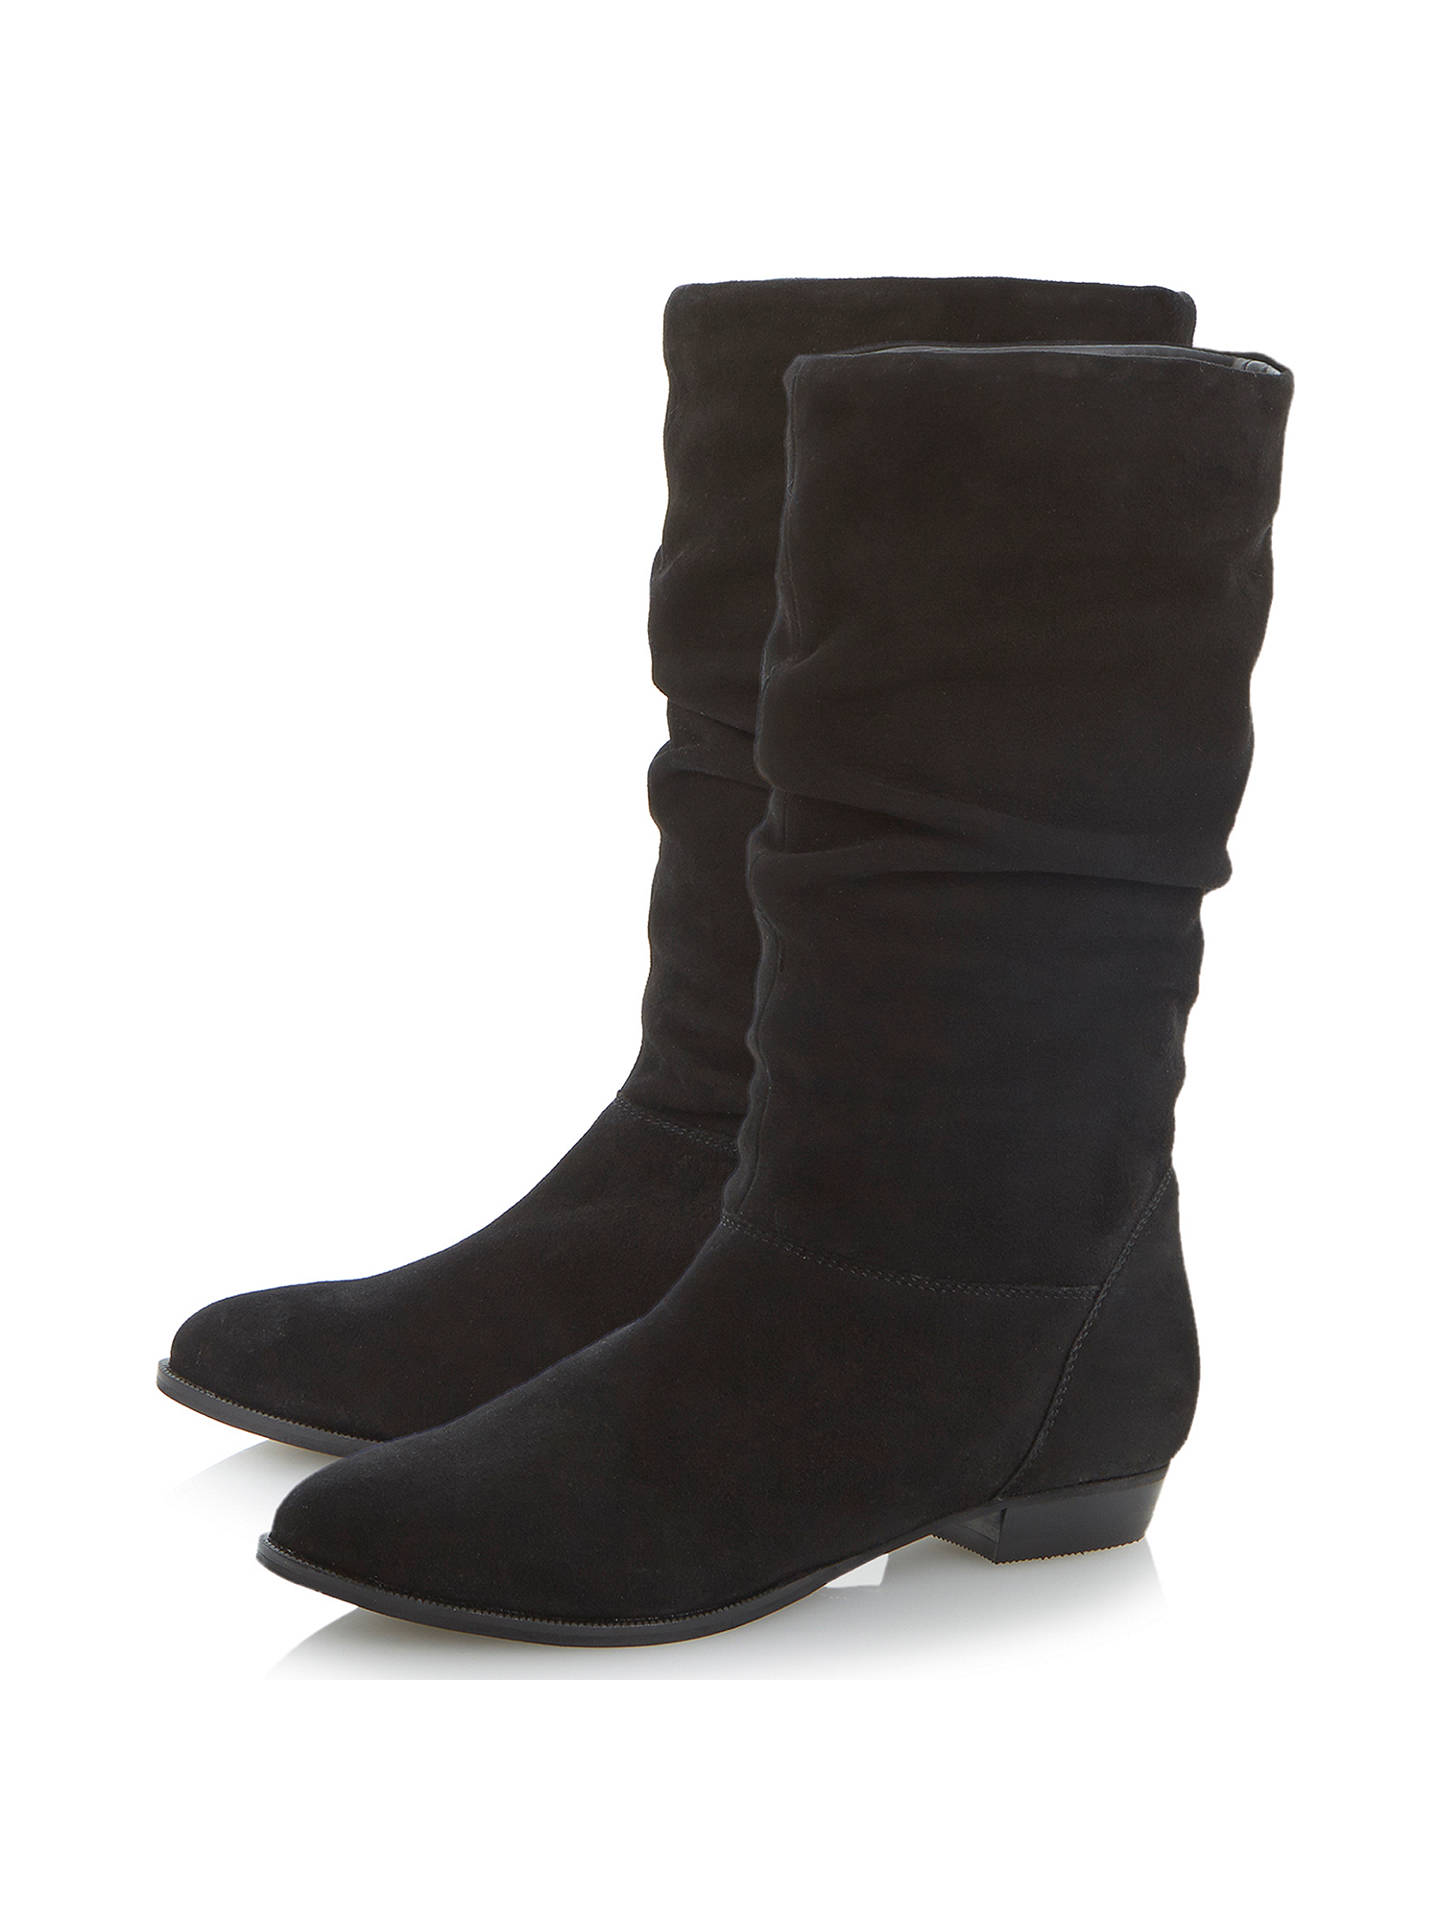 5e8675ecf ... Buy Dune Relissa Suede Slouch Calf Boots, Black, 3 Online at  johnlewis.com ...